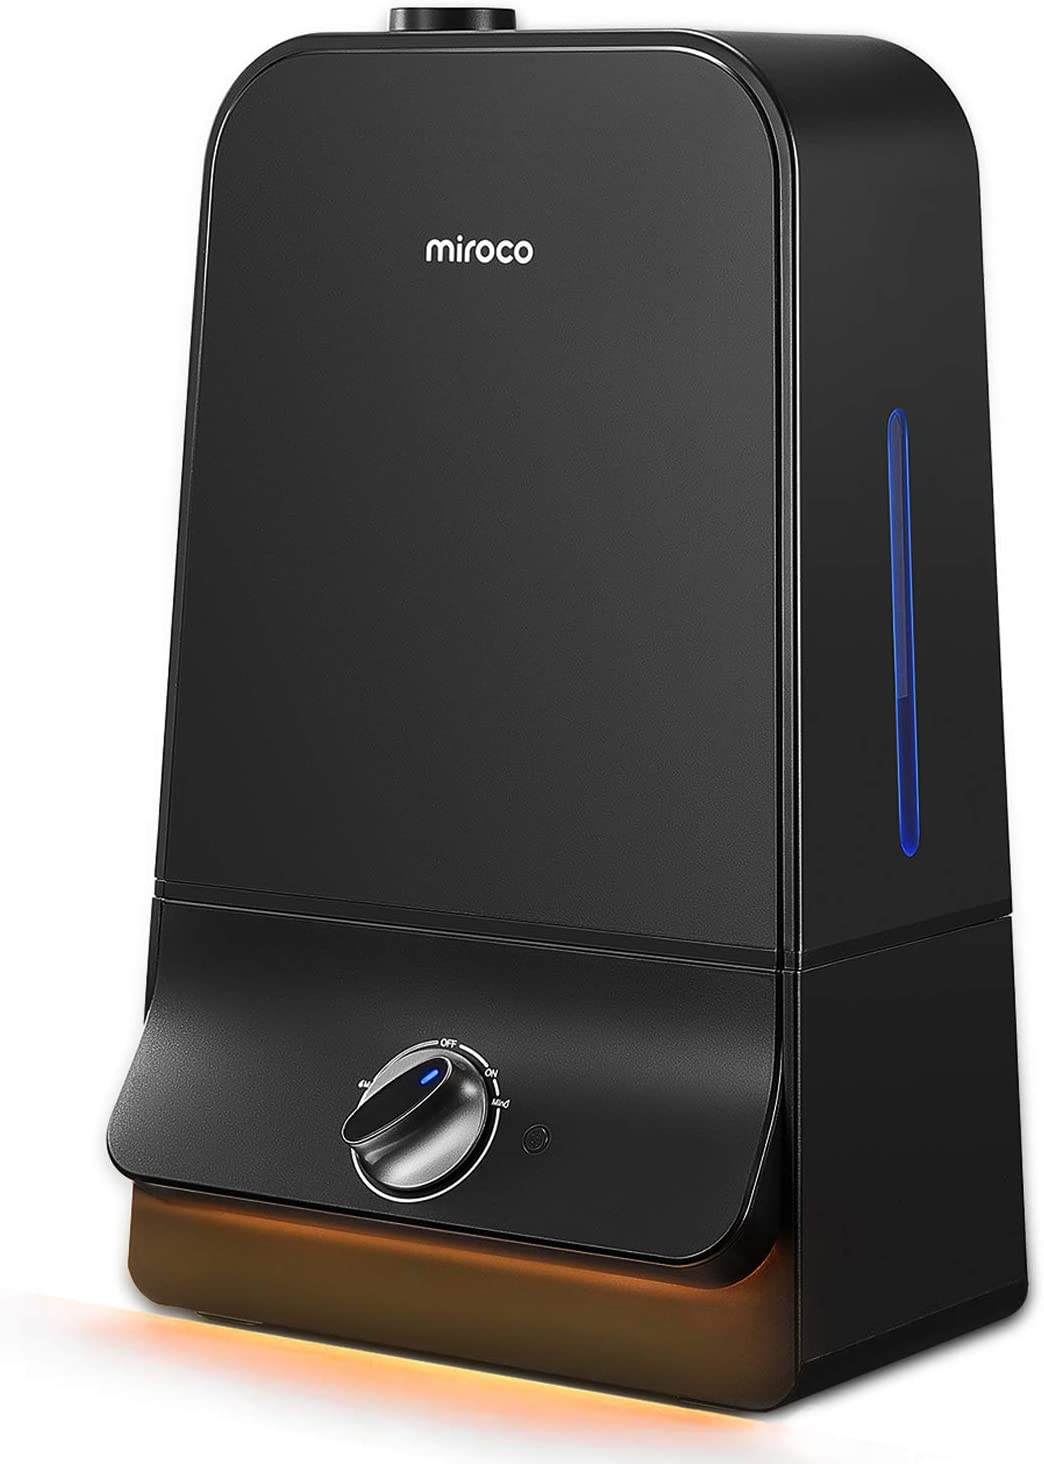 Miroco 26dB Ultrasonic Cool Mist Home Humidifier